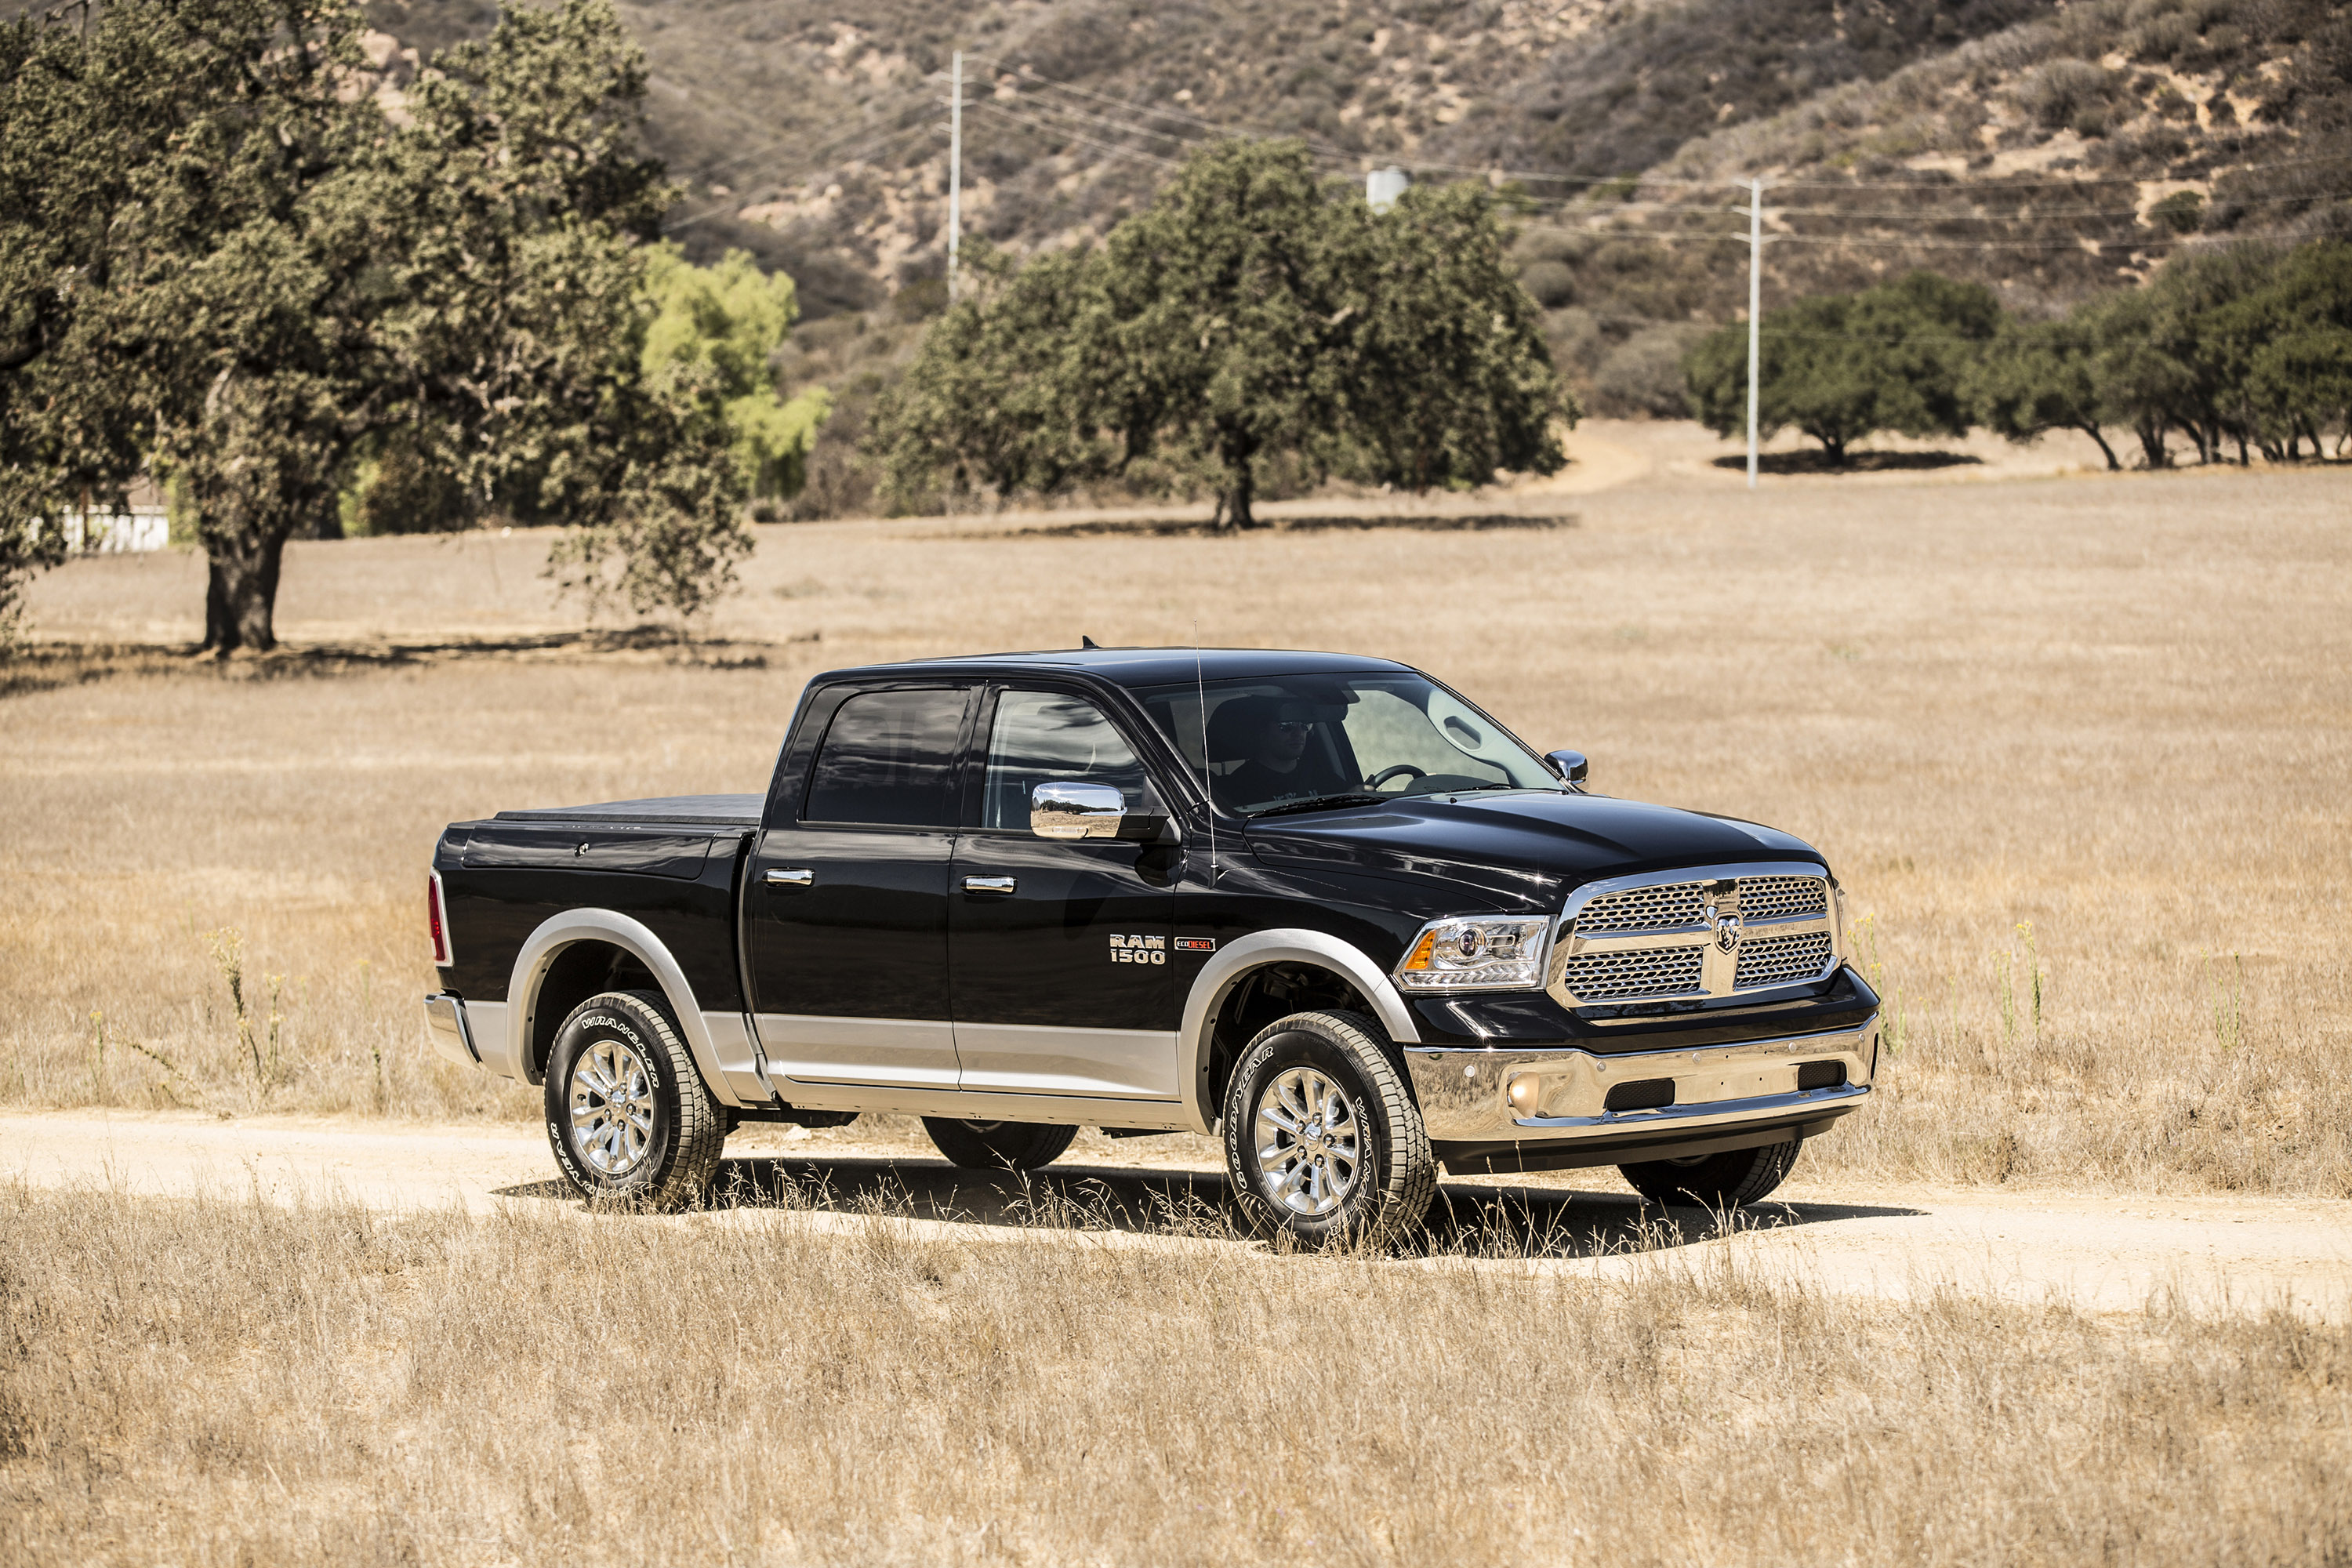 2015 dodge ram 1500 laramie longhorn ecodiesel hd pictures. Black Bedroom Furniture Sets. Home Design Ideas